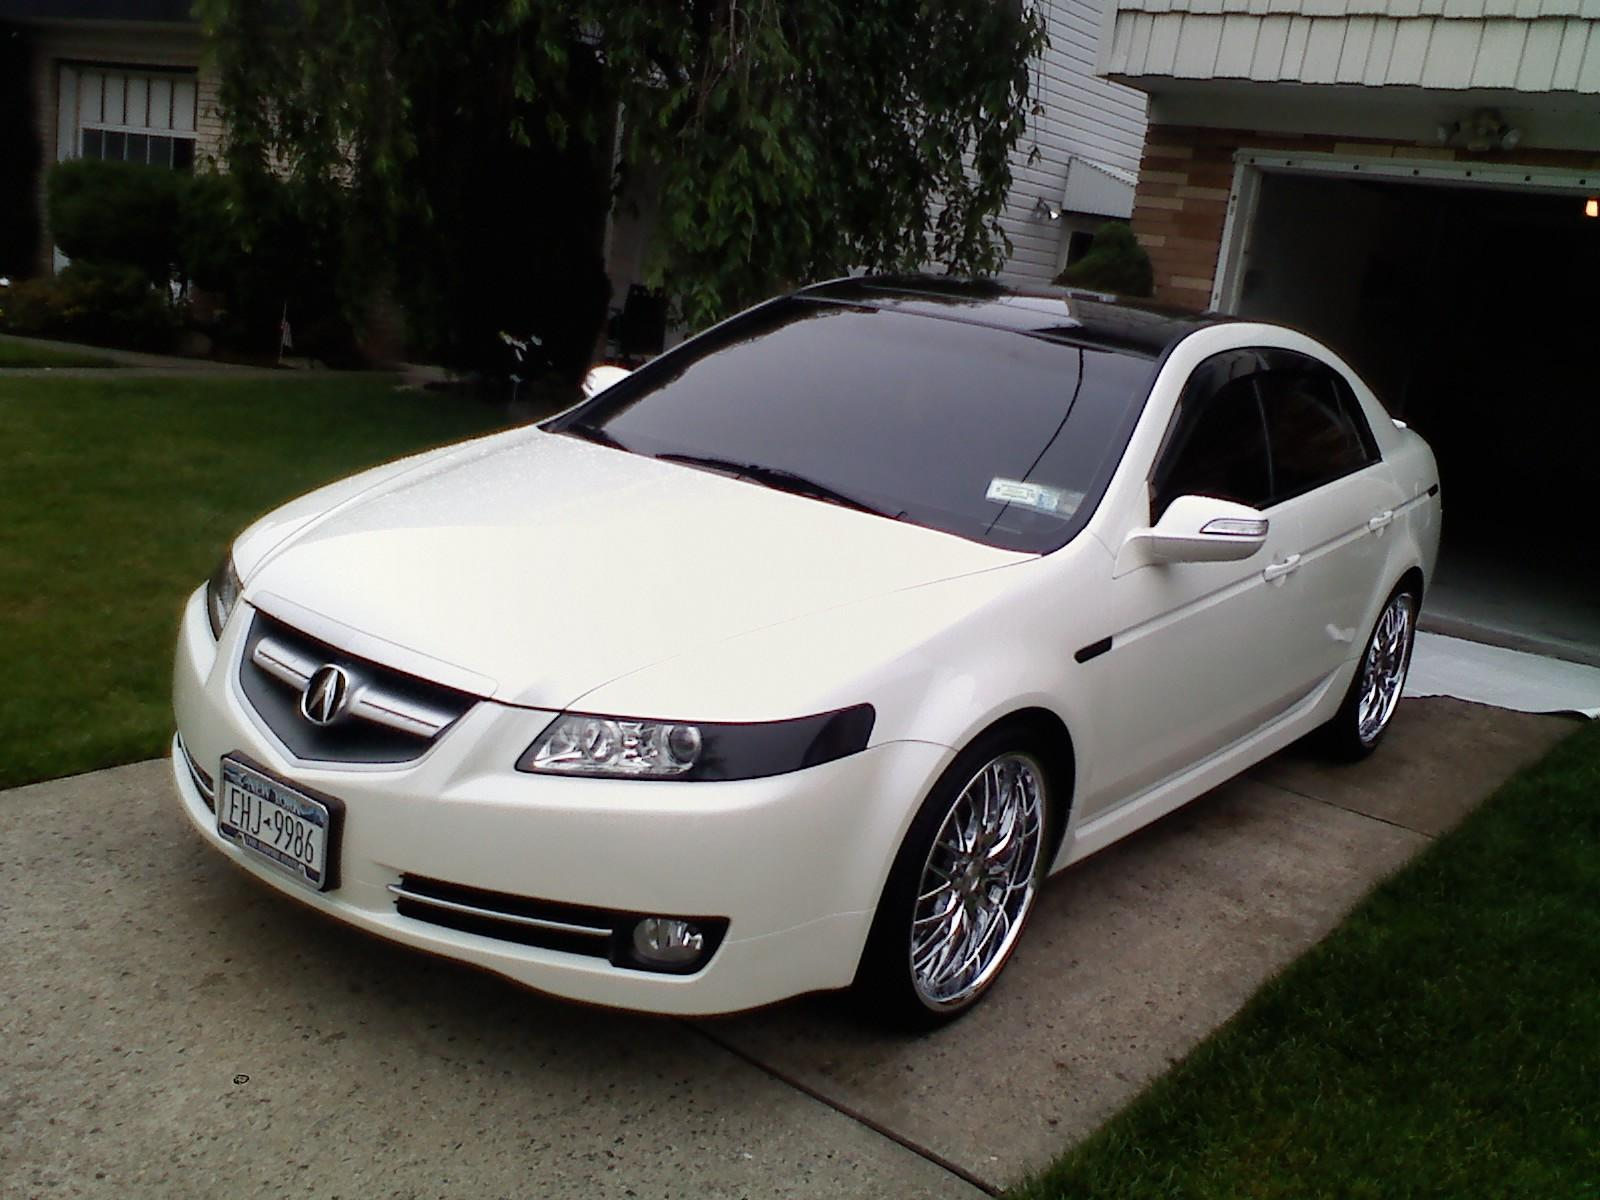 tl21ceayss 2008 acura tl specs photos modification info. Black Bedroom Furniture Sets. Home Design Ideas